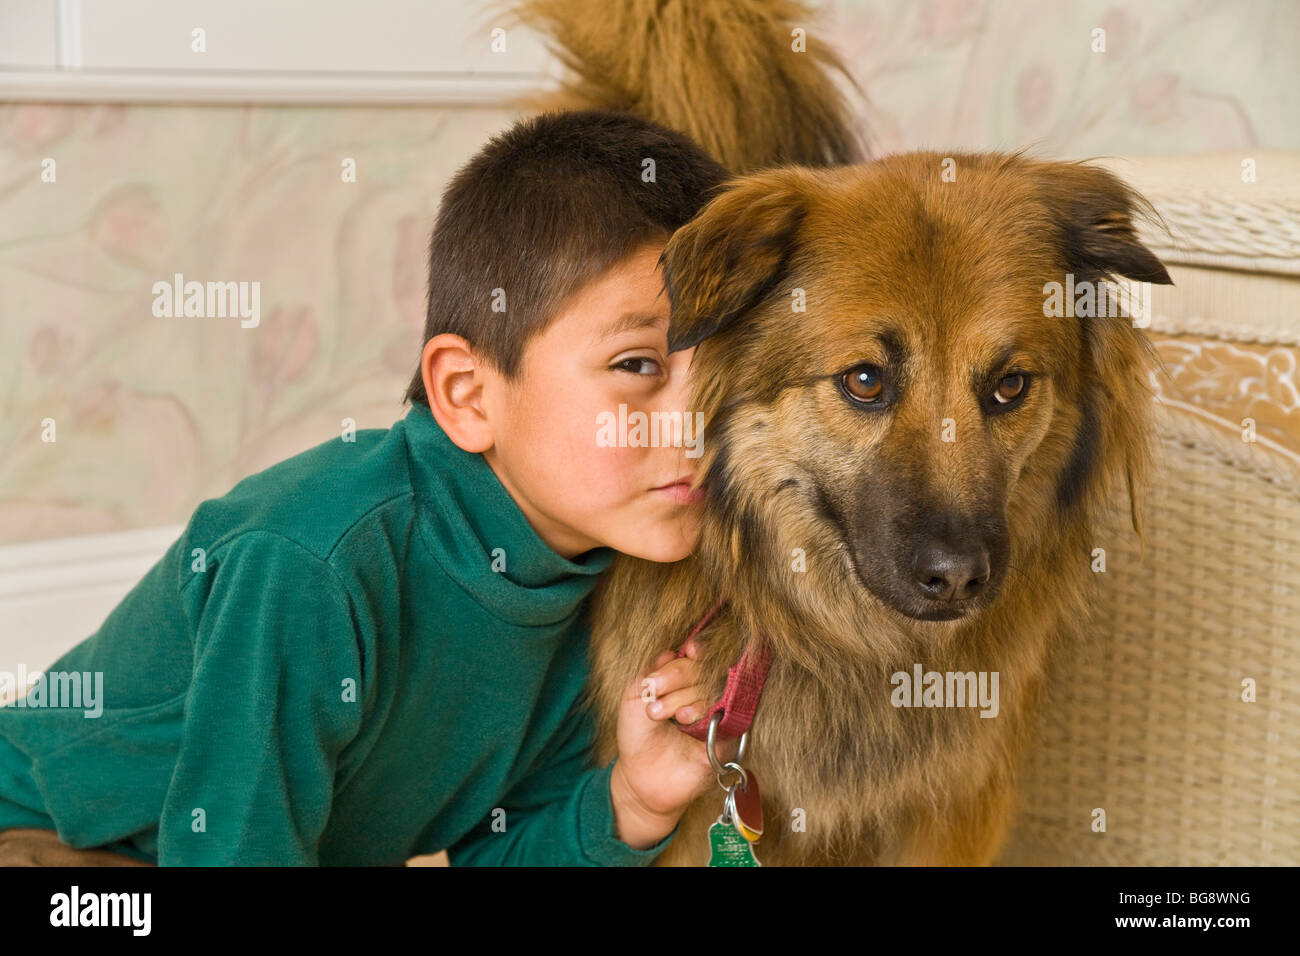 6-7 year old Hispanic boy being affectionate with his dog. child playing play plays dog eye level close up  front - Stock Image